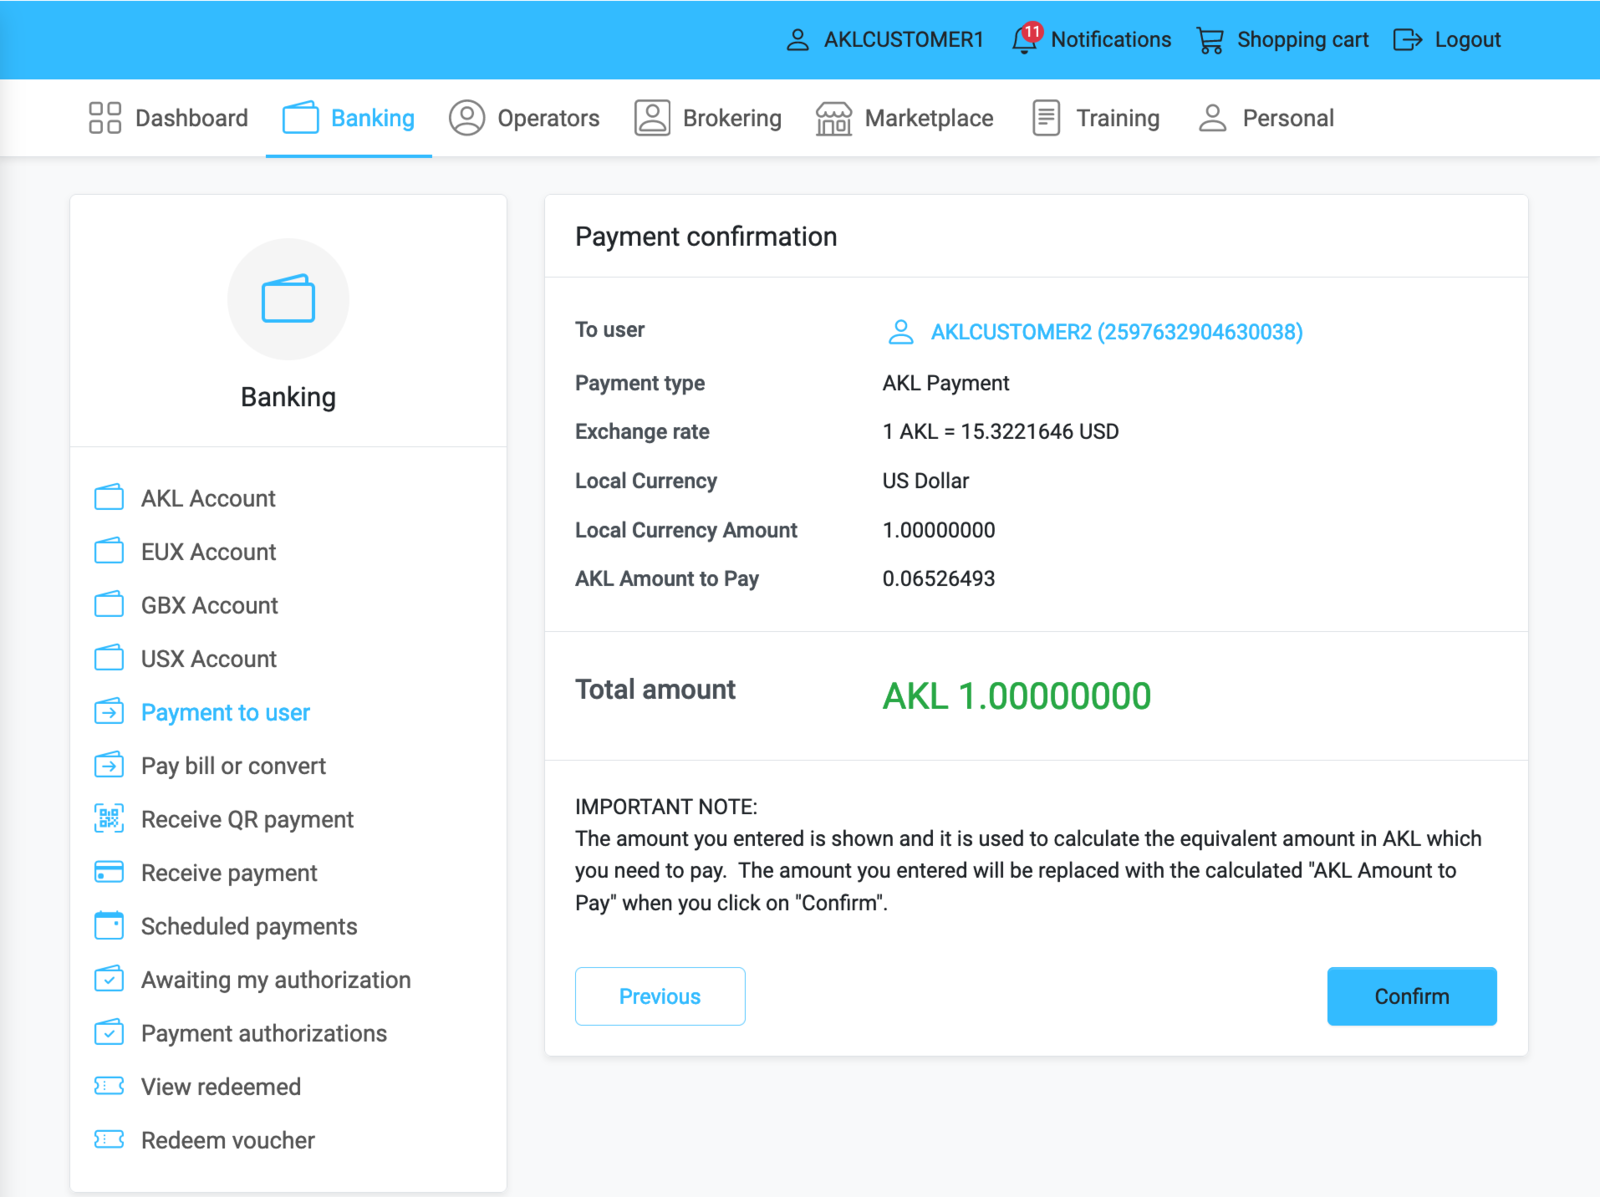 Check payment details and confirm